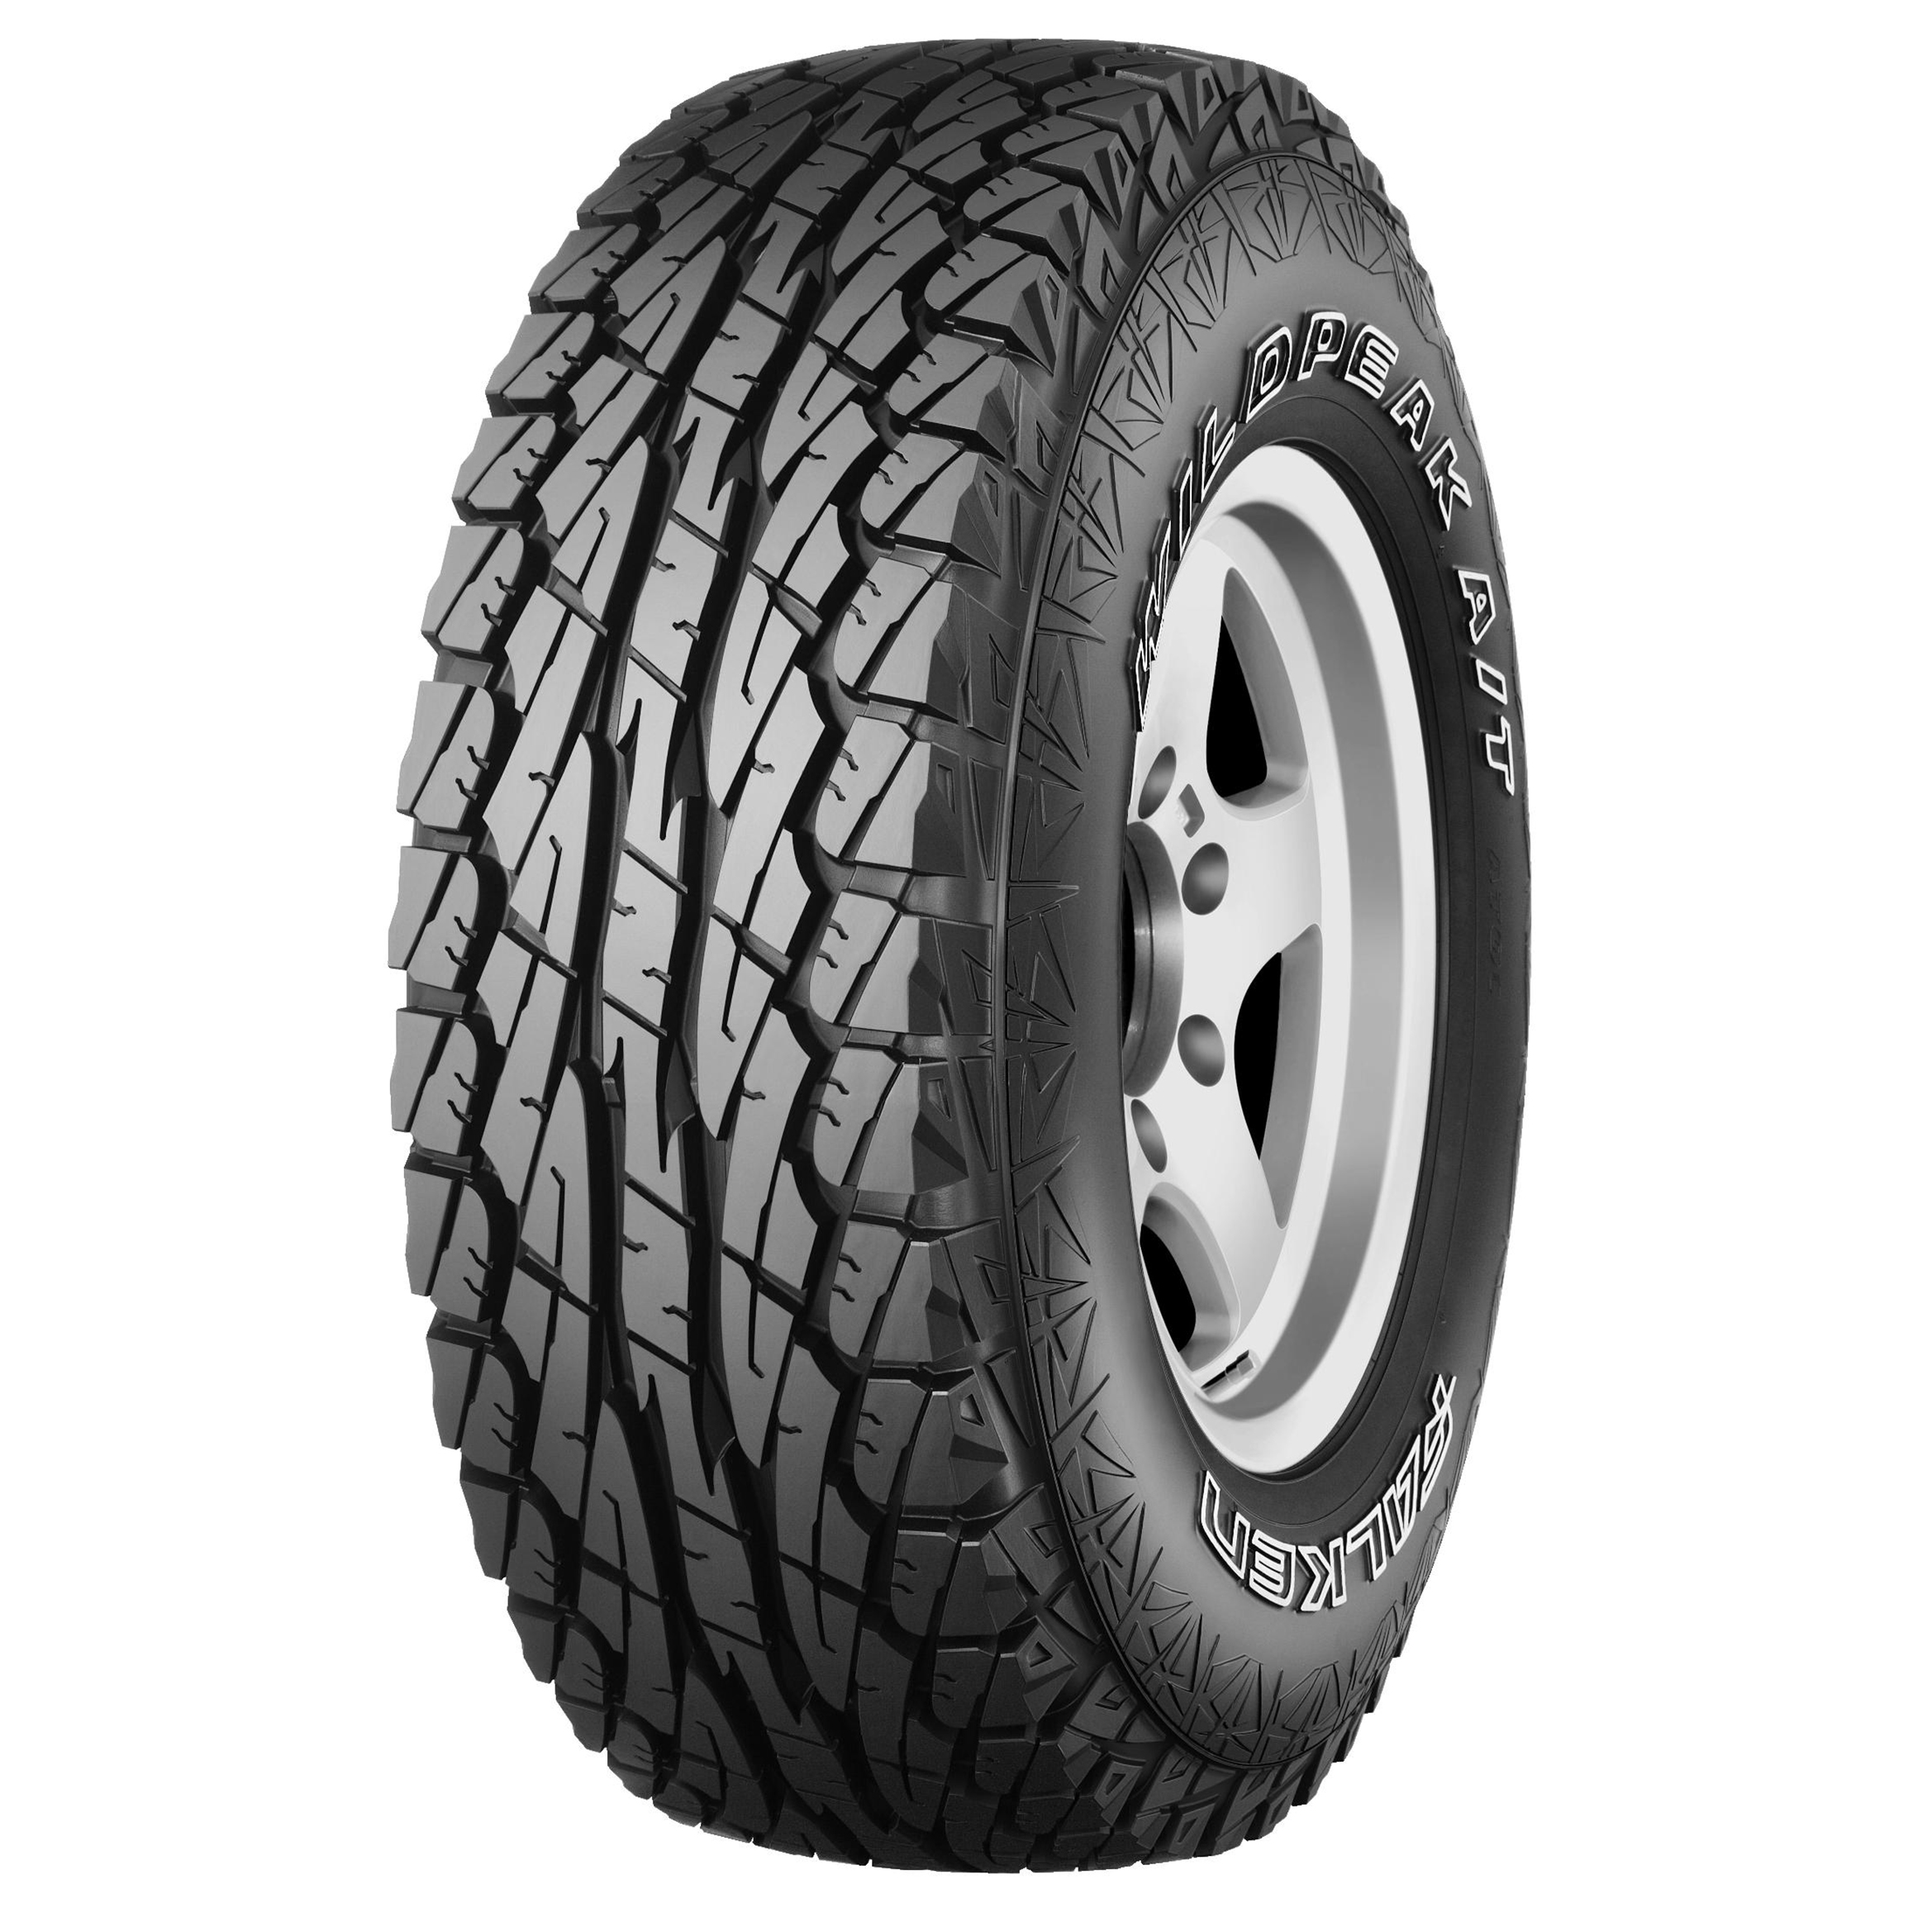 Falken AT01 265/65 R 17 Tubeless 112 S Car Tyre